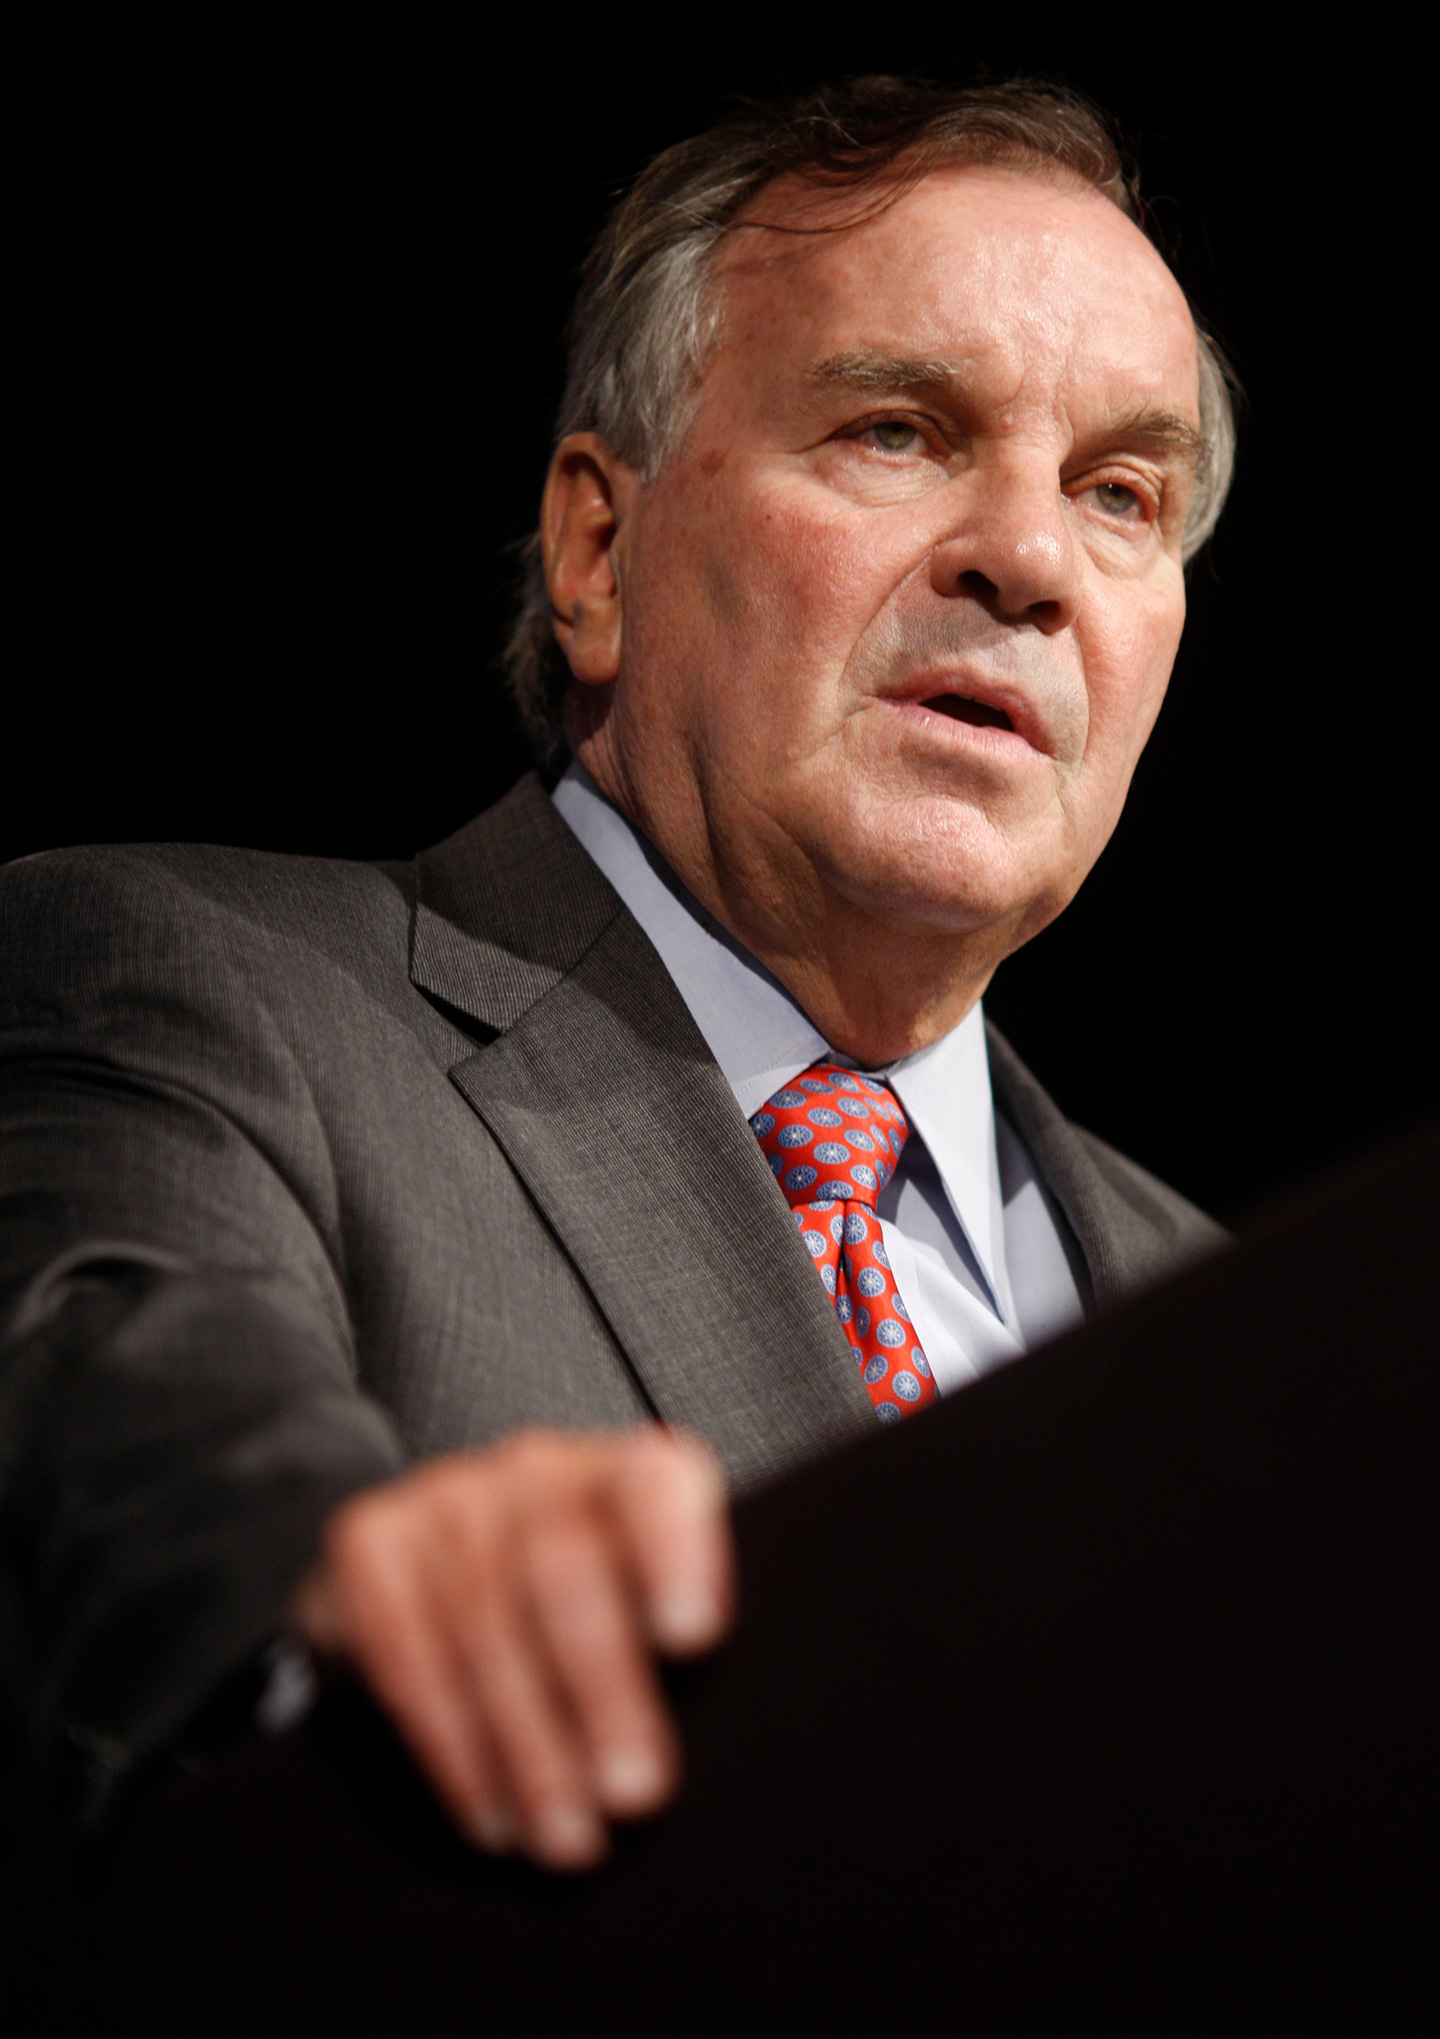 Chicago Mayor Richard Daley addresses the National Fraternal Congress on September 9, 2010 in Chicago, Illinois. Daley announced September 8, that he would not seek reelection as mayor, a post he has held since 1989.